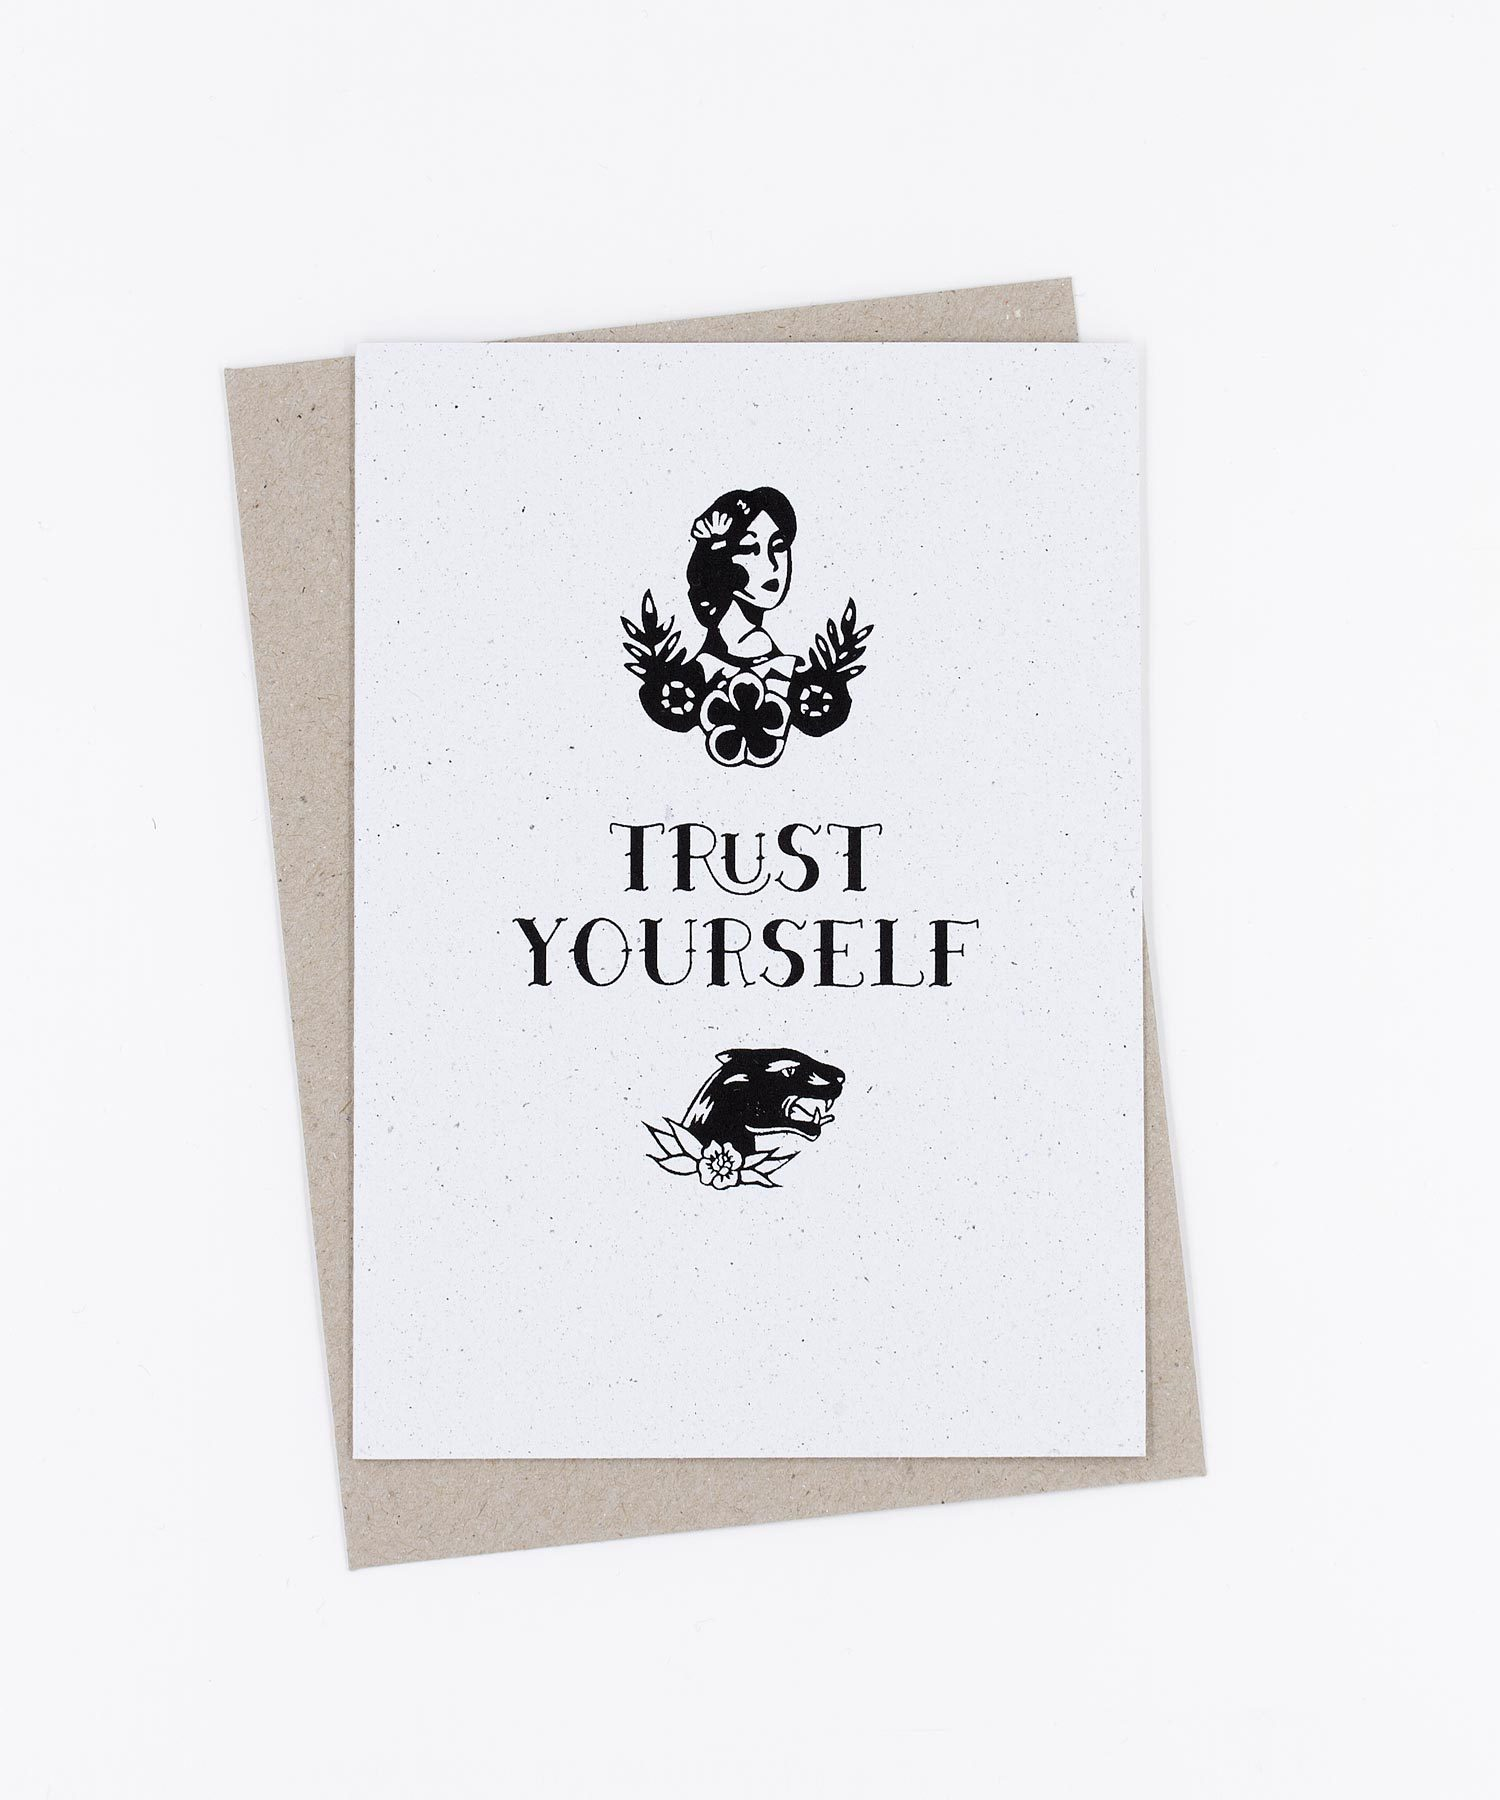 Siebdruck Grußkarte Tattoo · Trust Yourself